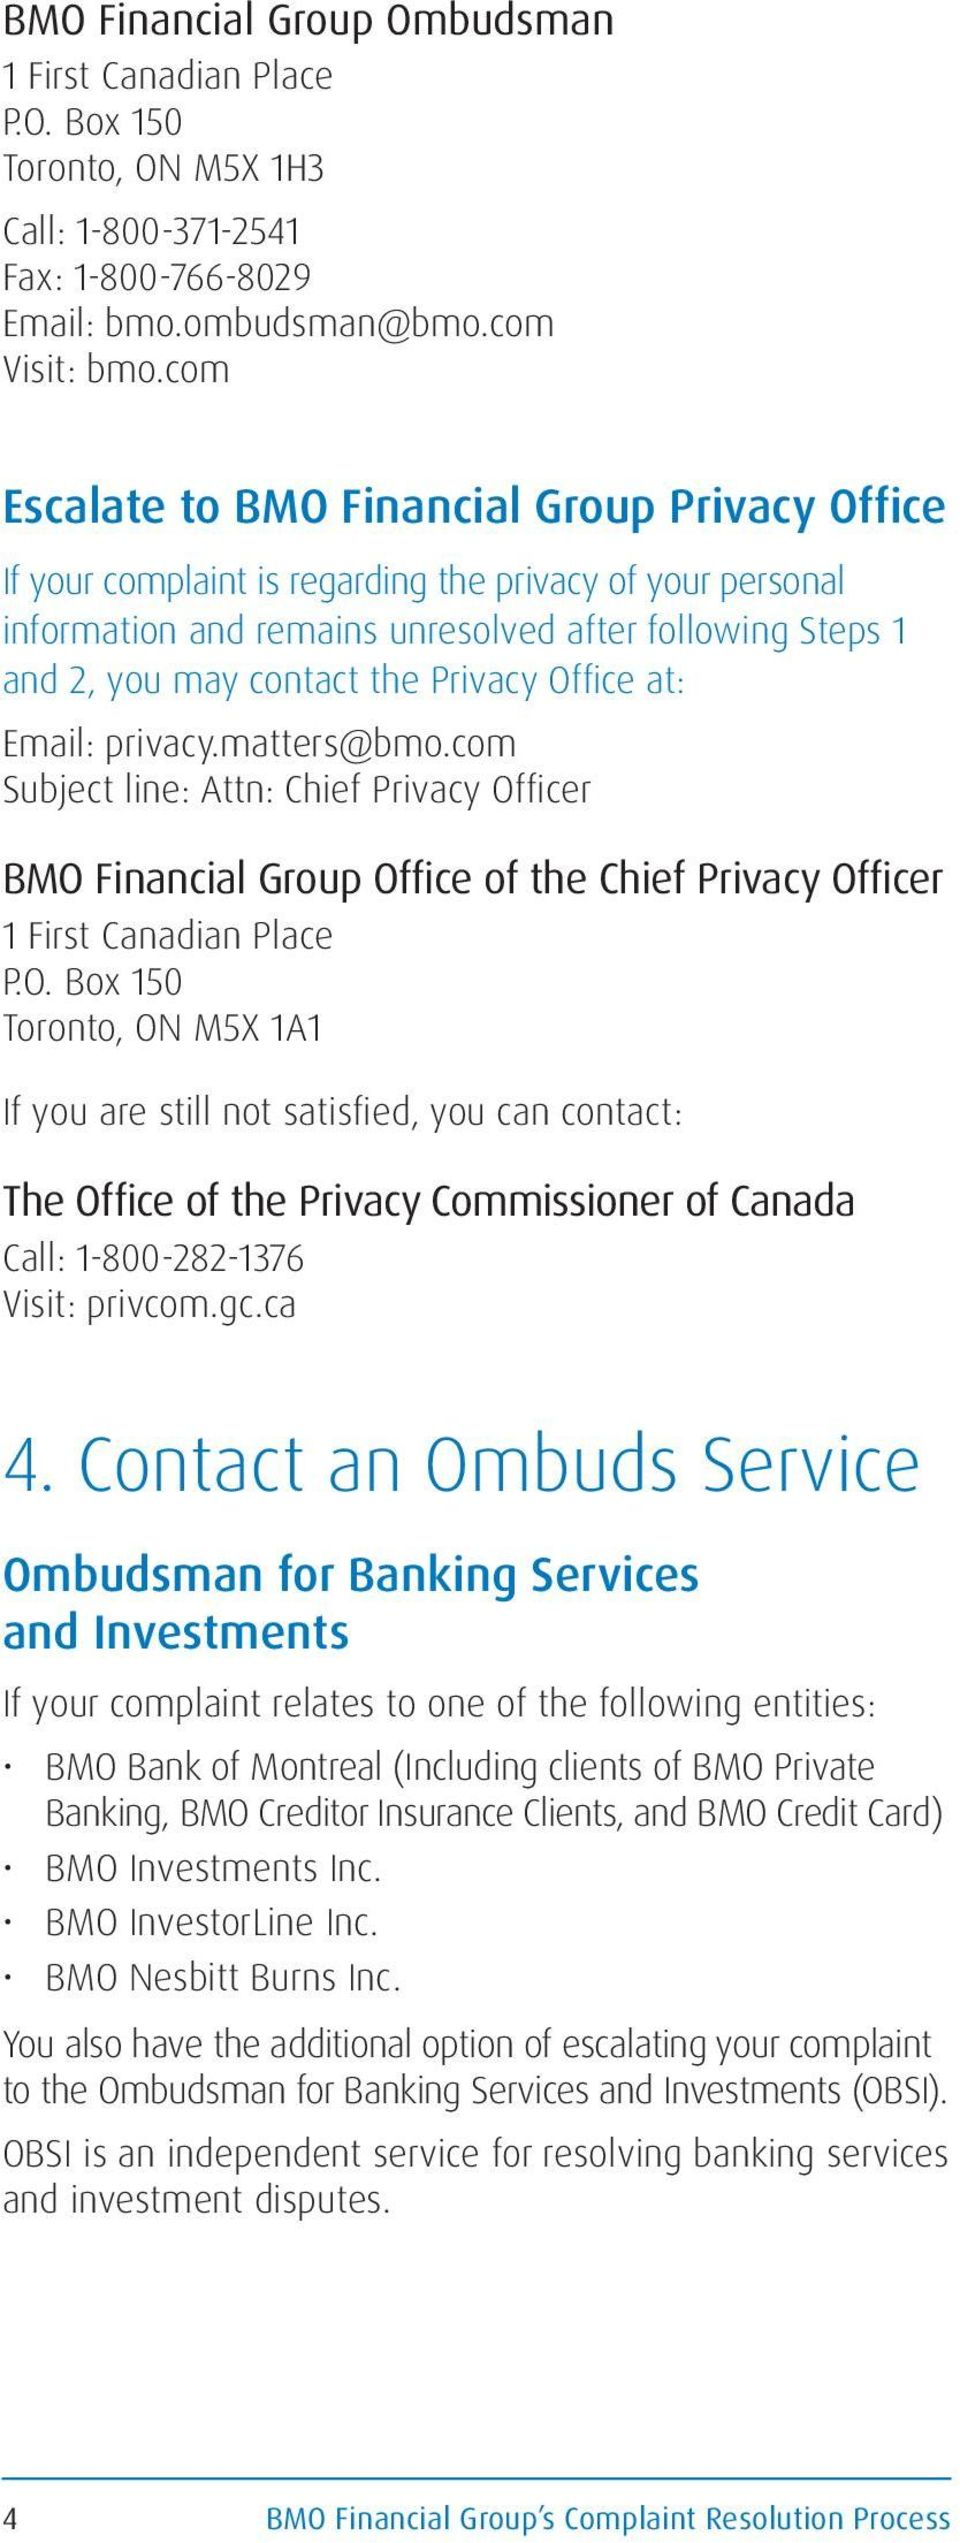 Privacy Office at: Email: privacy.matters@bmo.com Subject line: Attn: Chief Privacy Officer BMO Financial Group Office of the Chief Privacy Officer 1 First Canadian Place P.O. Box 150 Toronto, ON M5X 1A1 If you are still not satisfied, you can contact: The Office of the Privacy Commissioner of Canada Call: 1-800-282-1376 Visit: privcom.